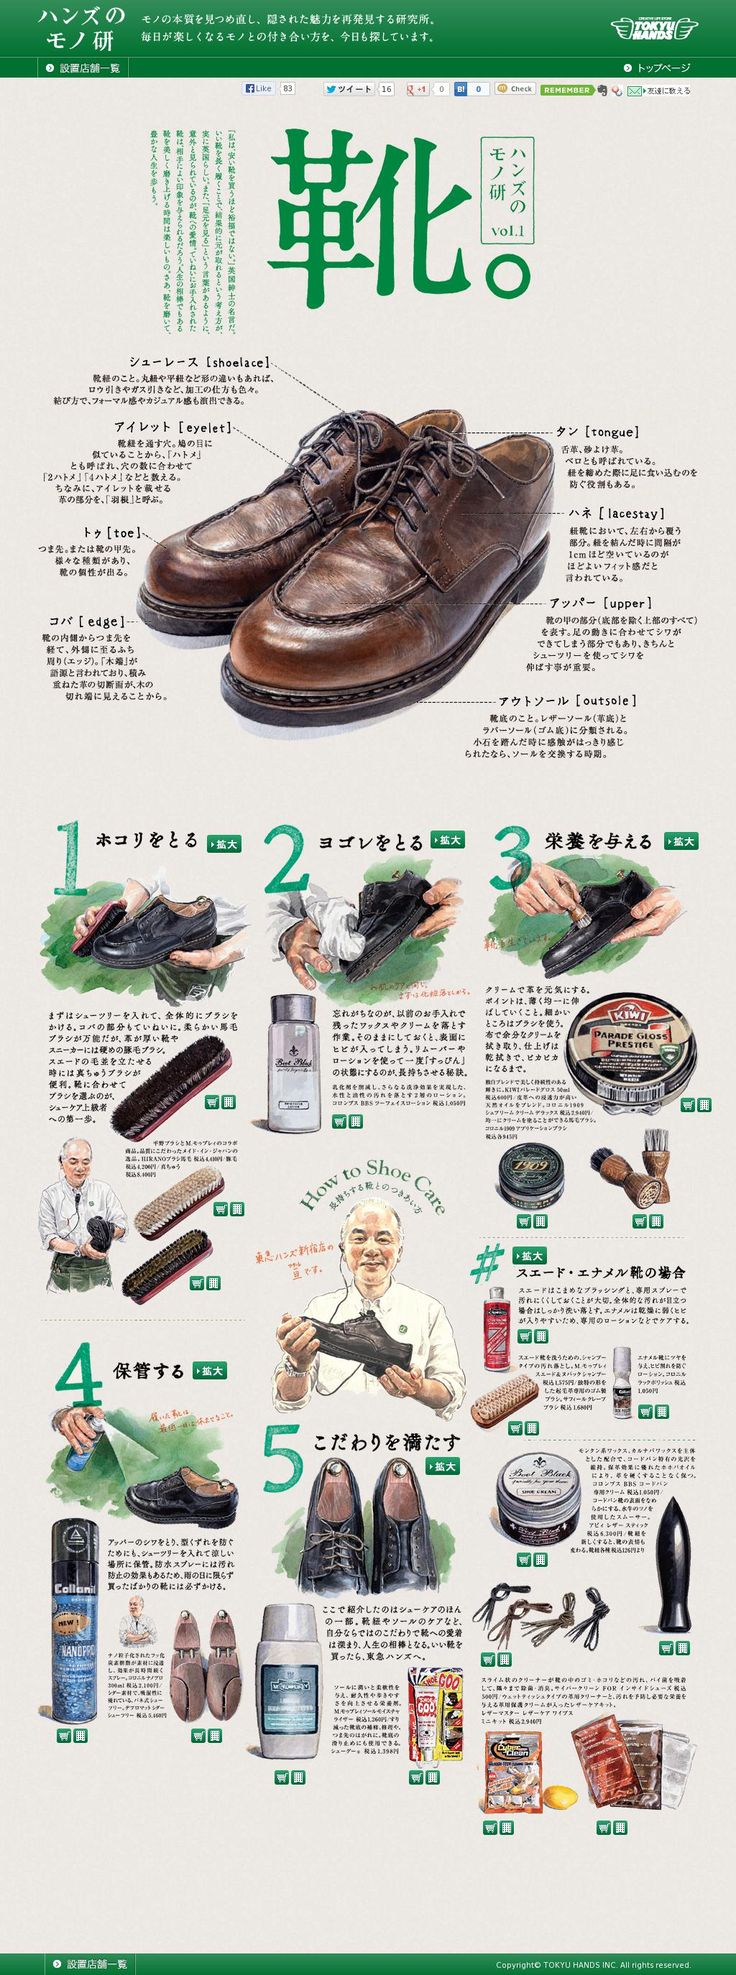 写真でいいので、こういう雑誌風の特集もしたいですね。  The website 'http://www.tokyu-hands.co.jp/monoken/vol01/index.html' courtesy of @Pinstamatic (http://pinstamatic.com)